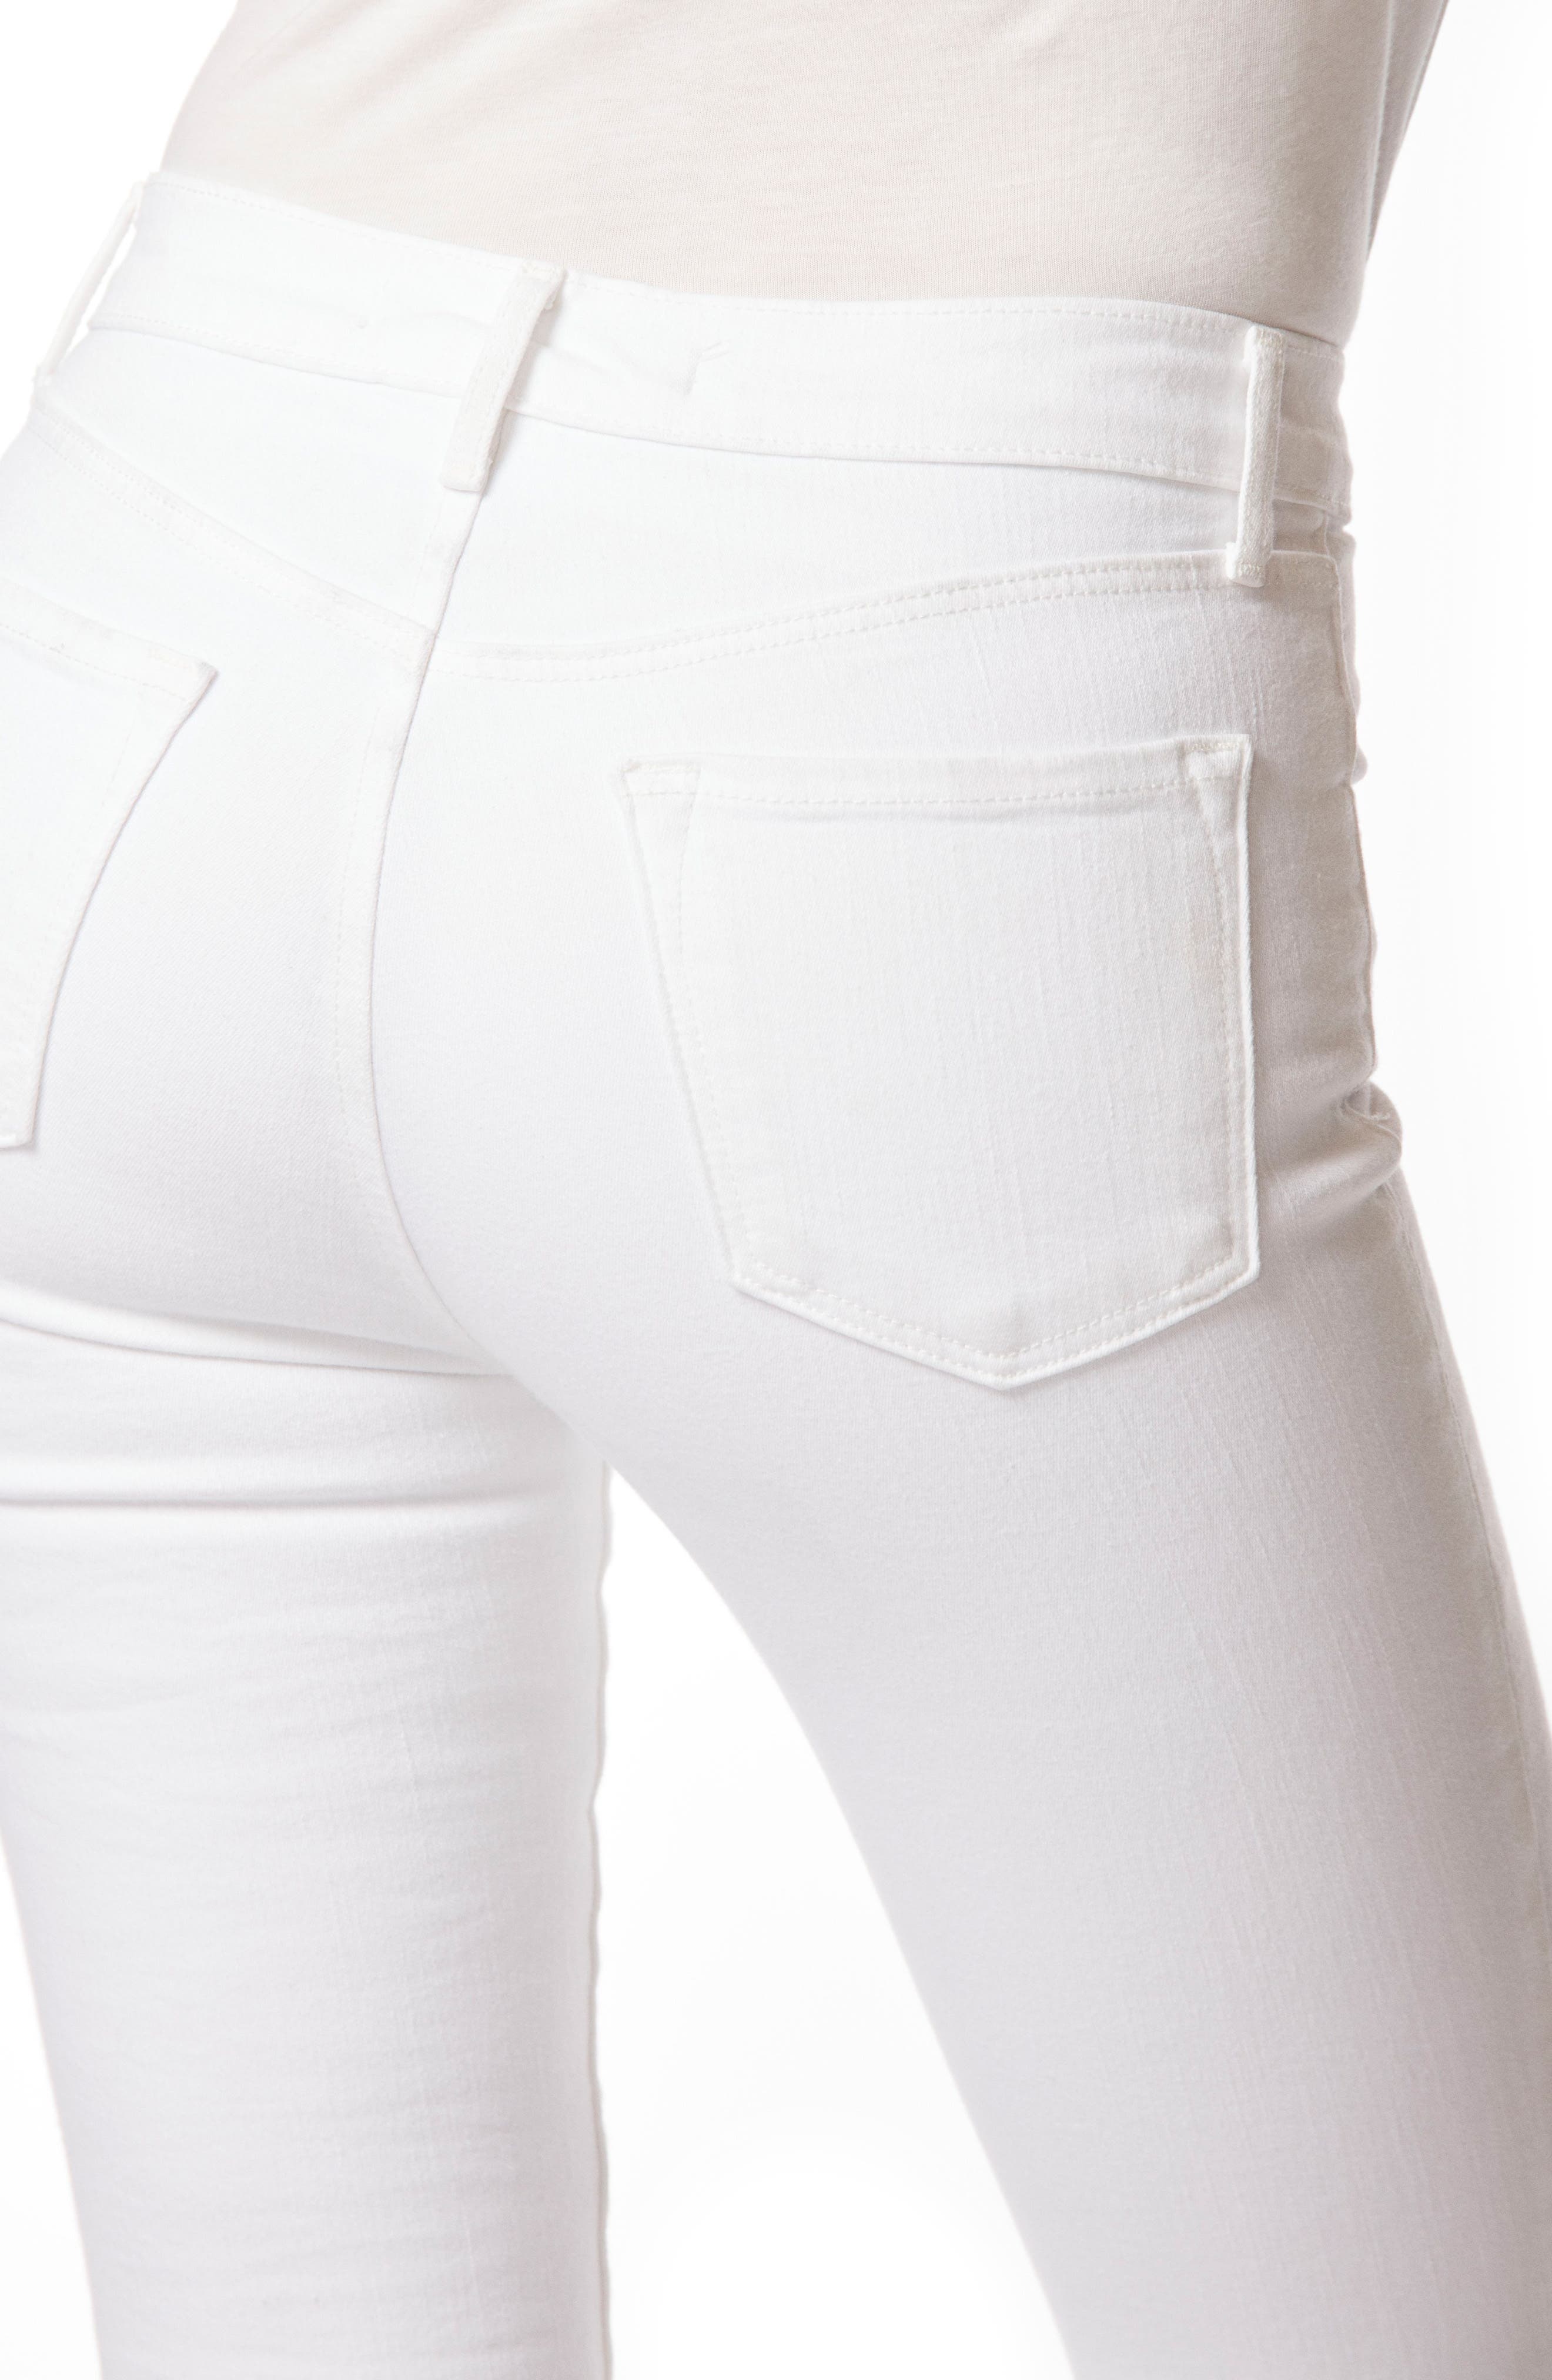 2311 Maria High Waist Super Skinny Jeans,                             Alternate thumbnail 5, color,                             Blanc